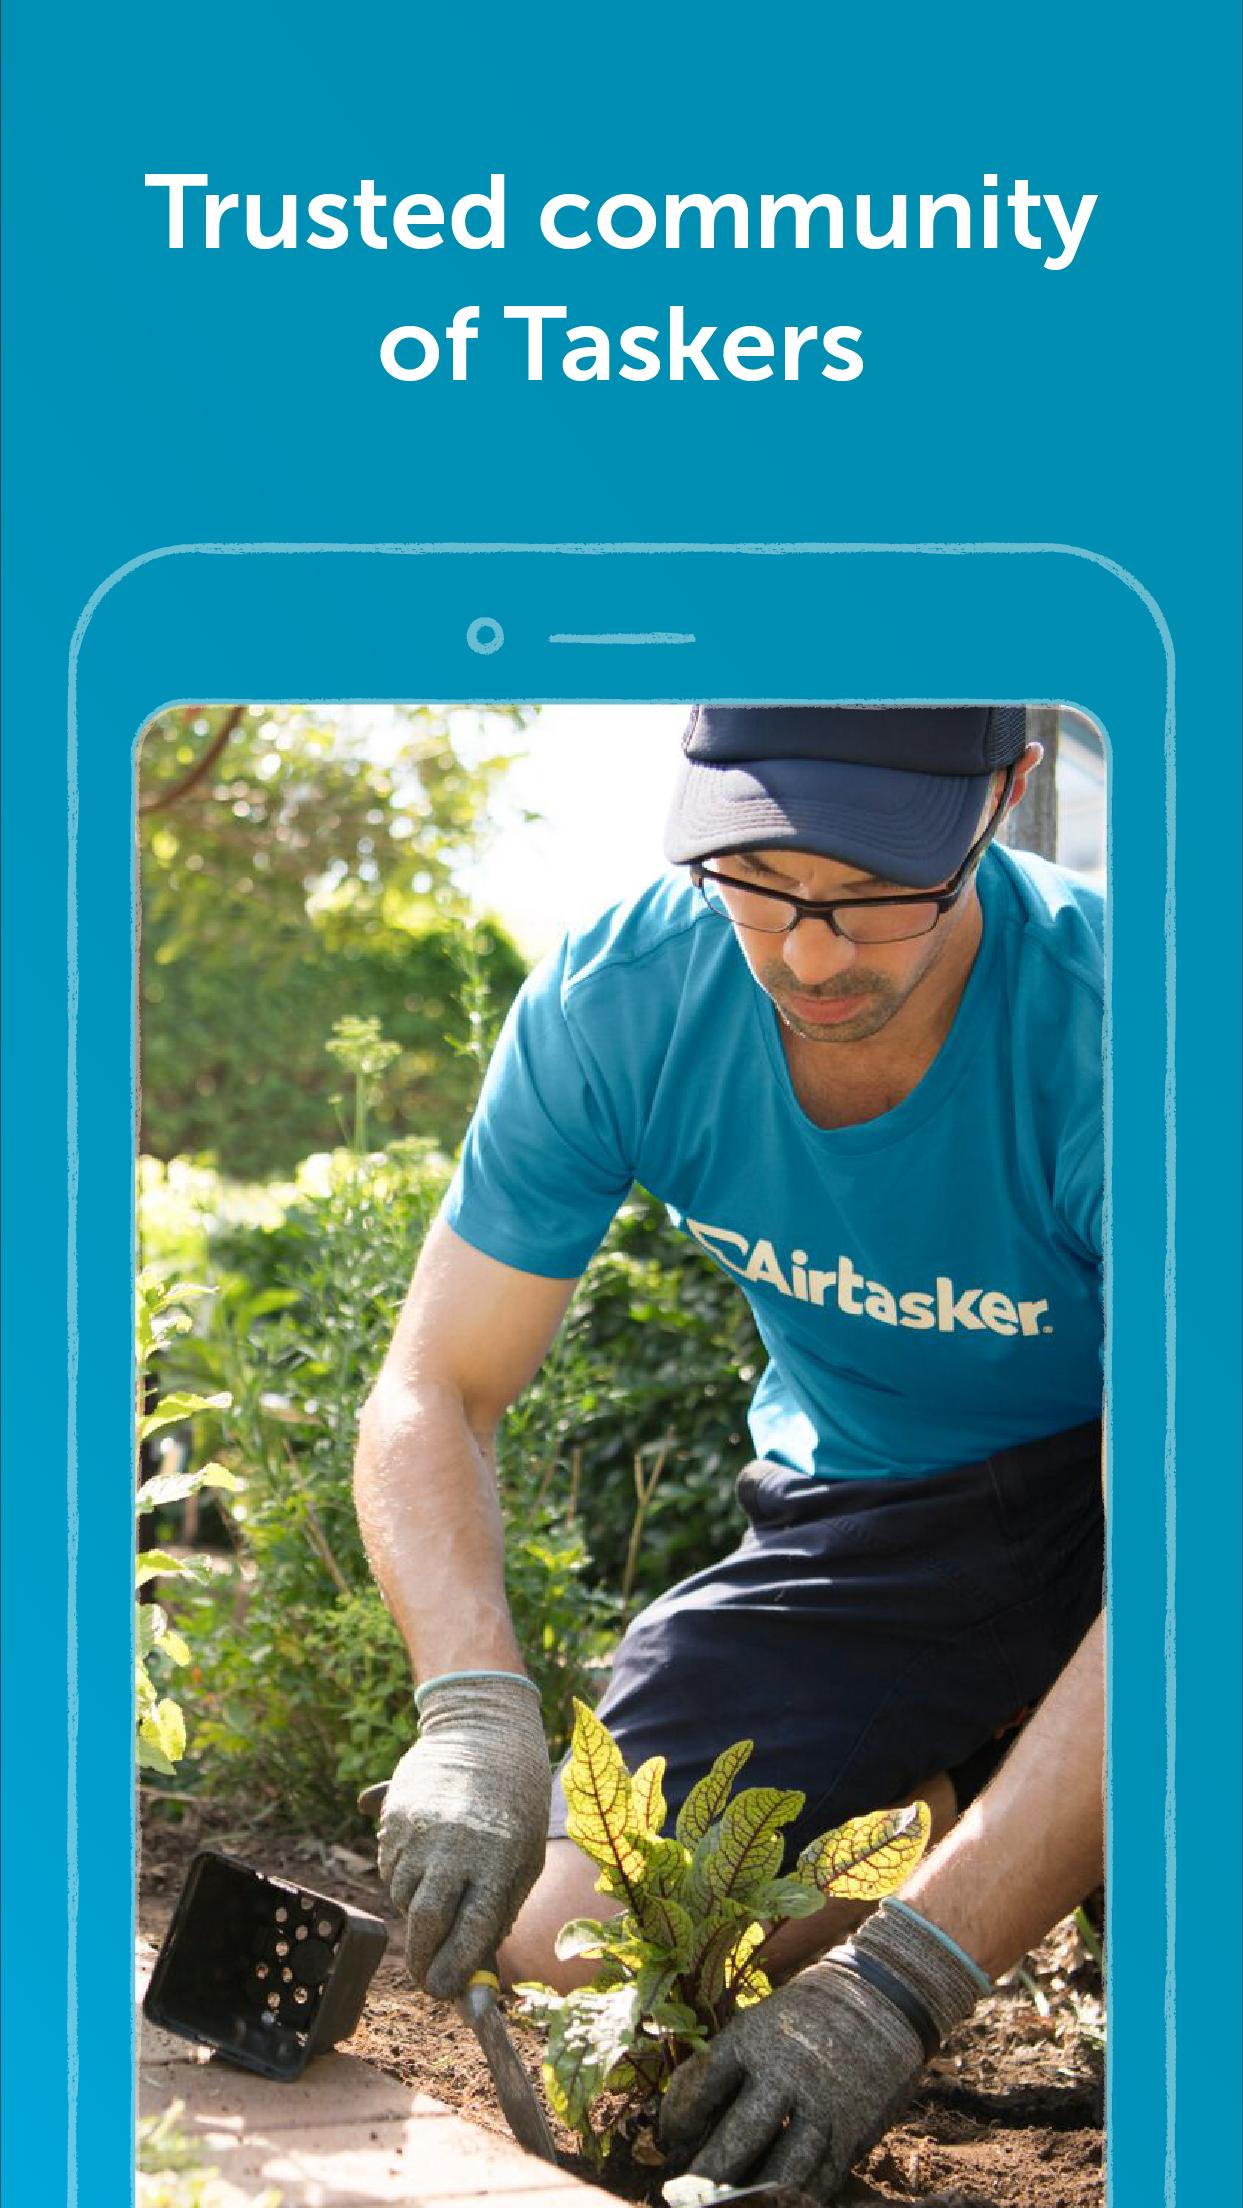 Airtasker for Android - APK Download